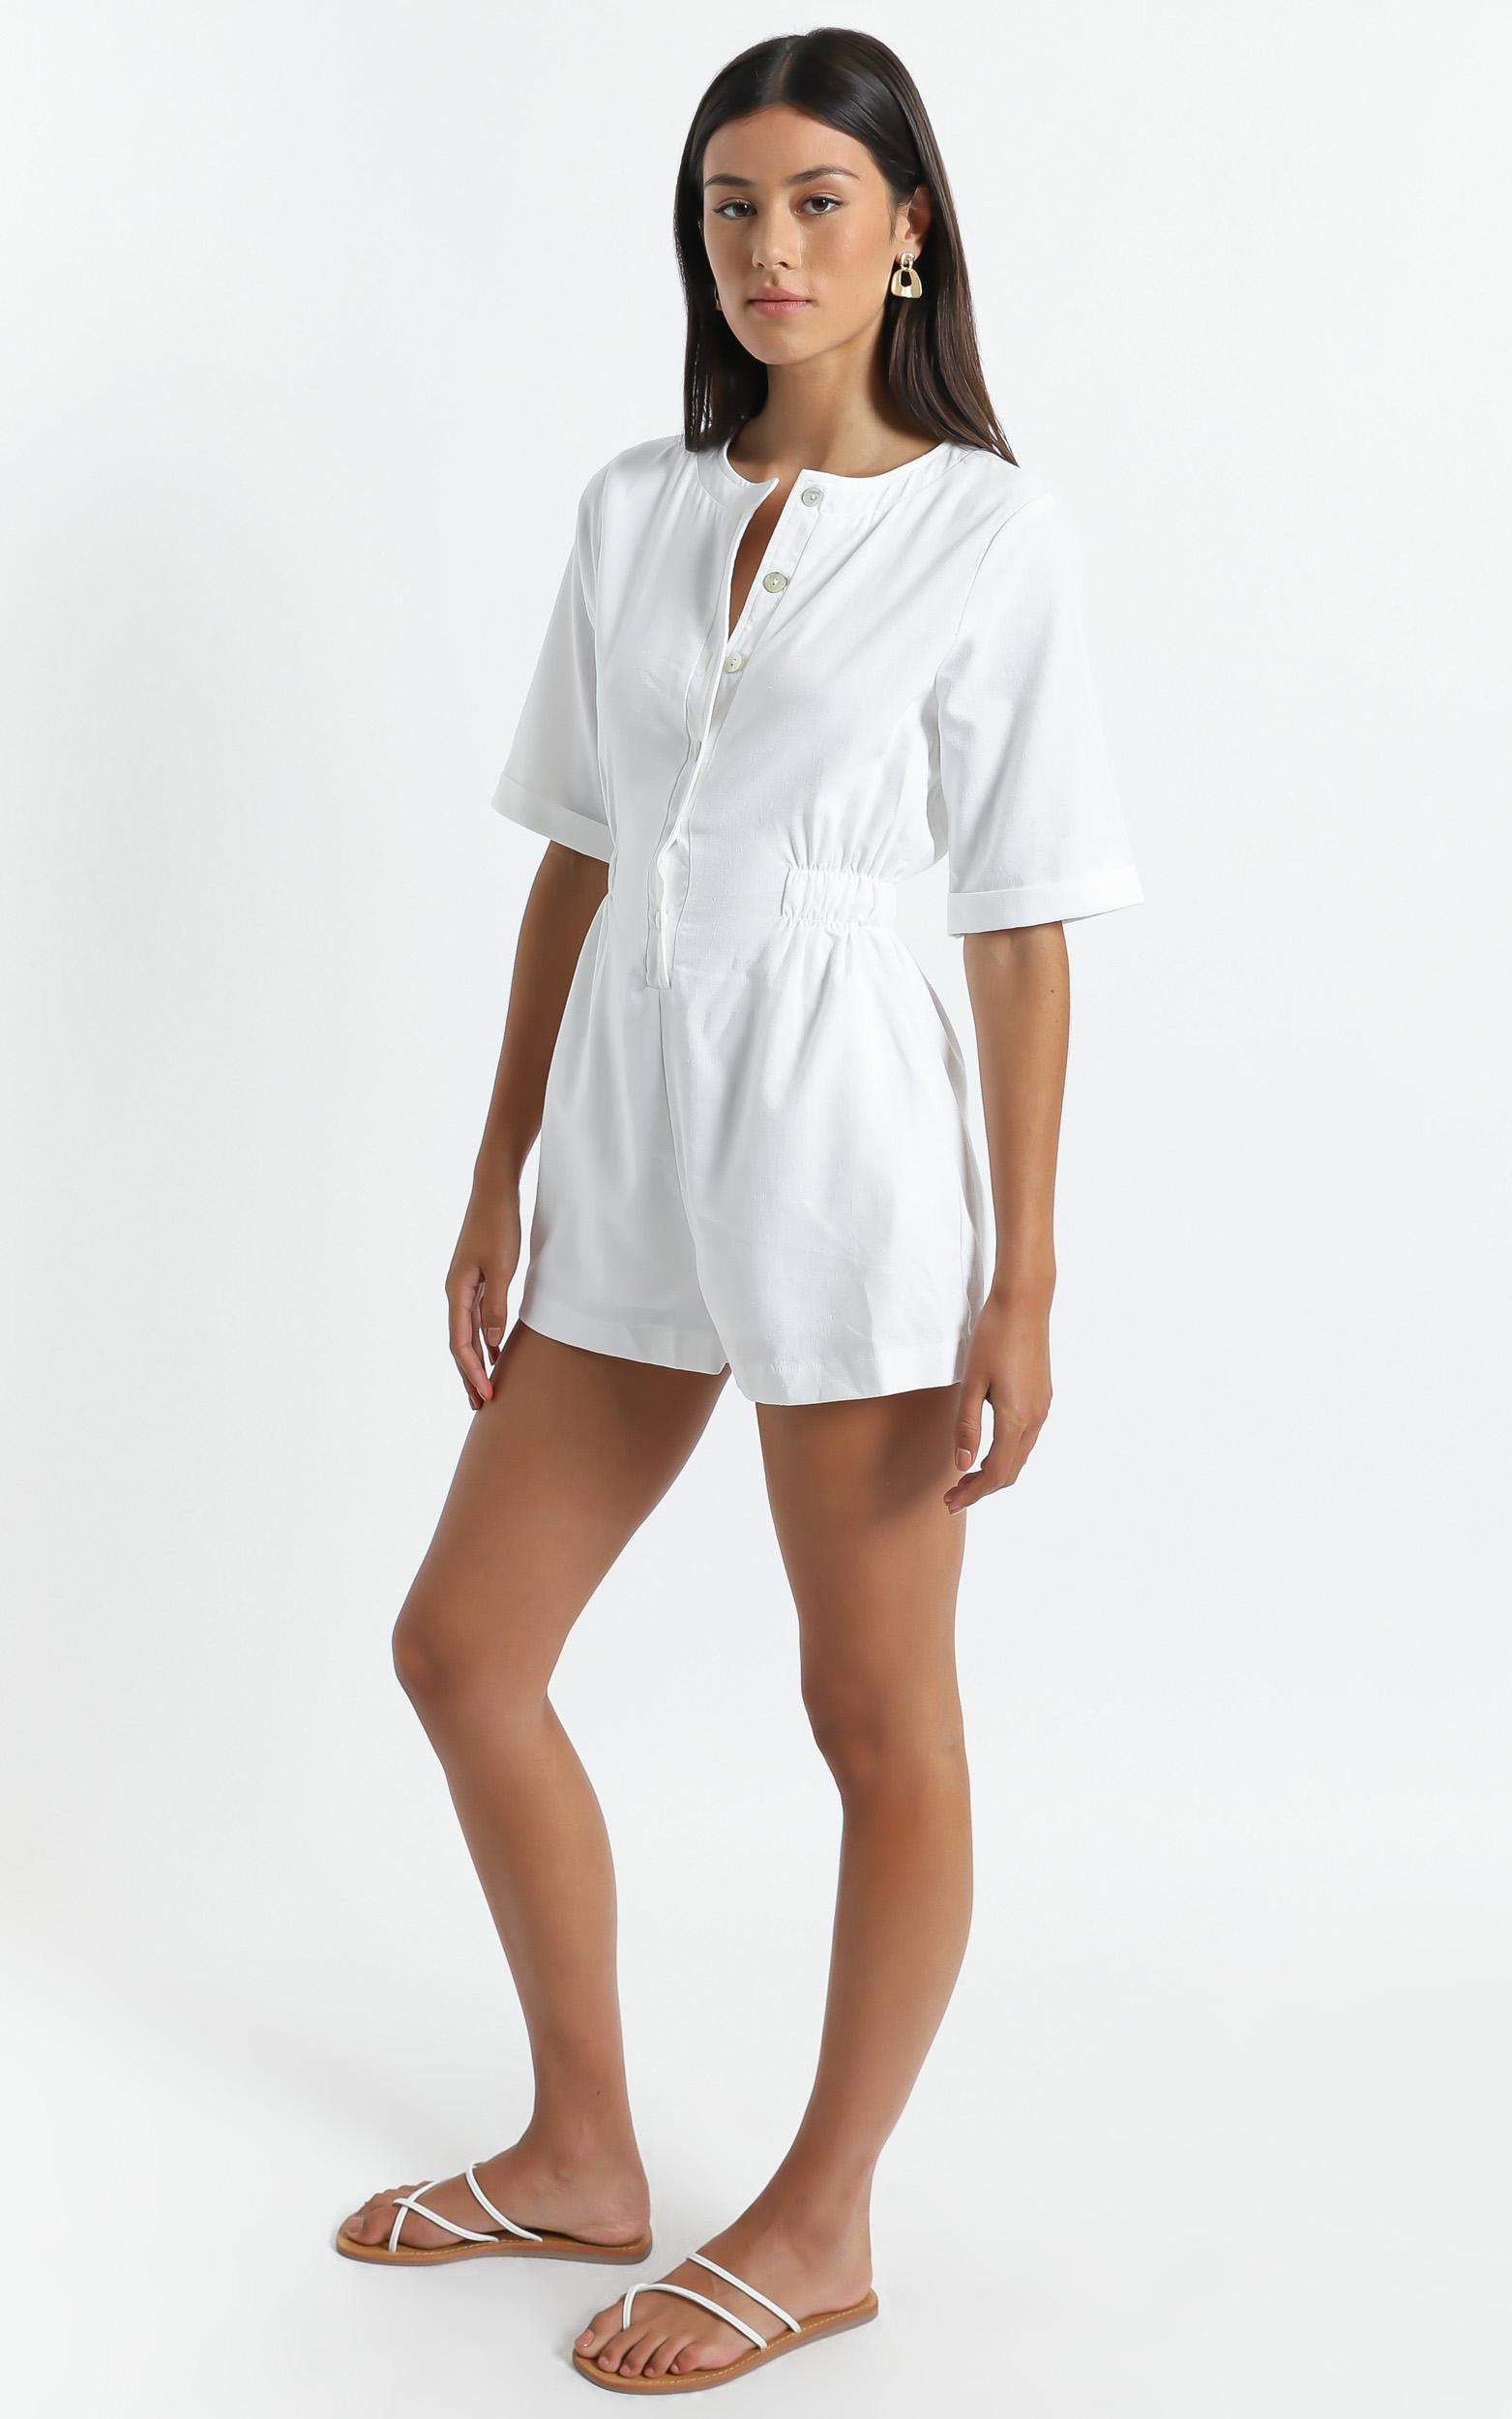 Melisende Playsuit in White - 6 (XS), White, hi-res image number null